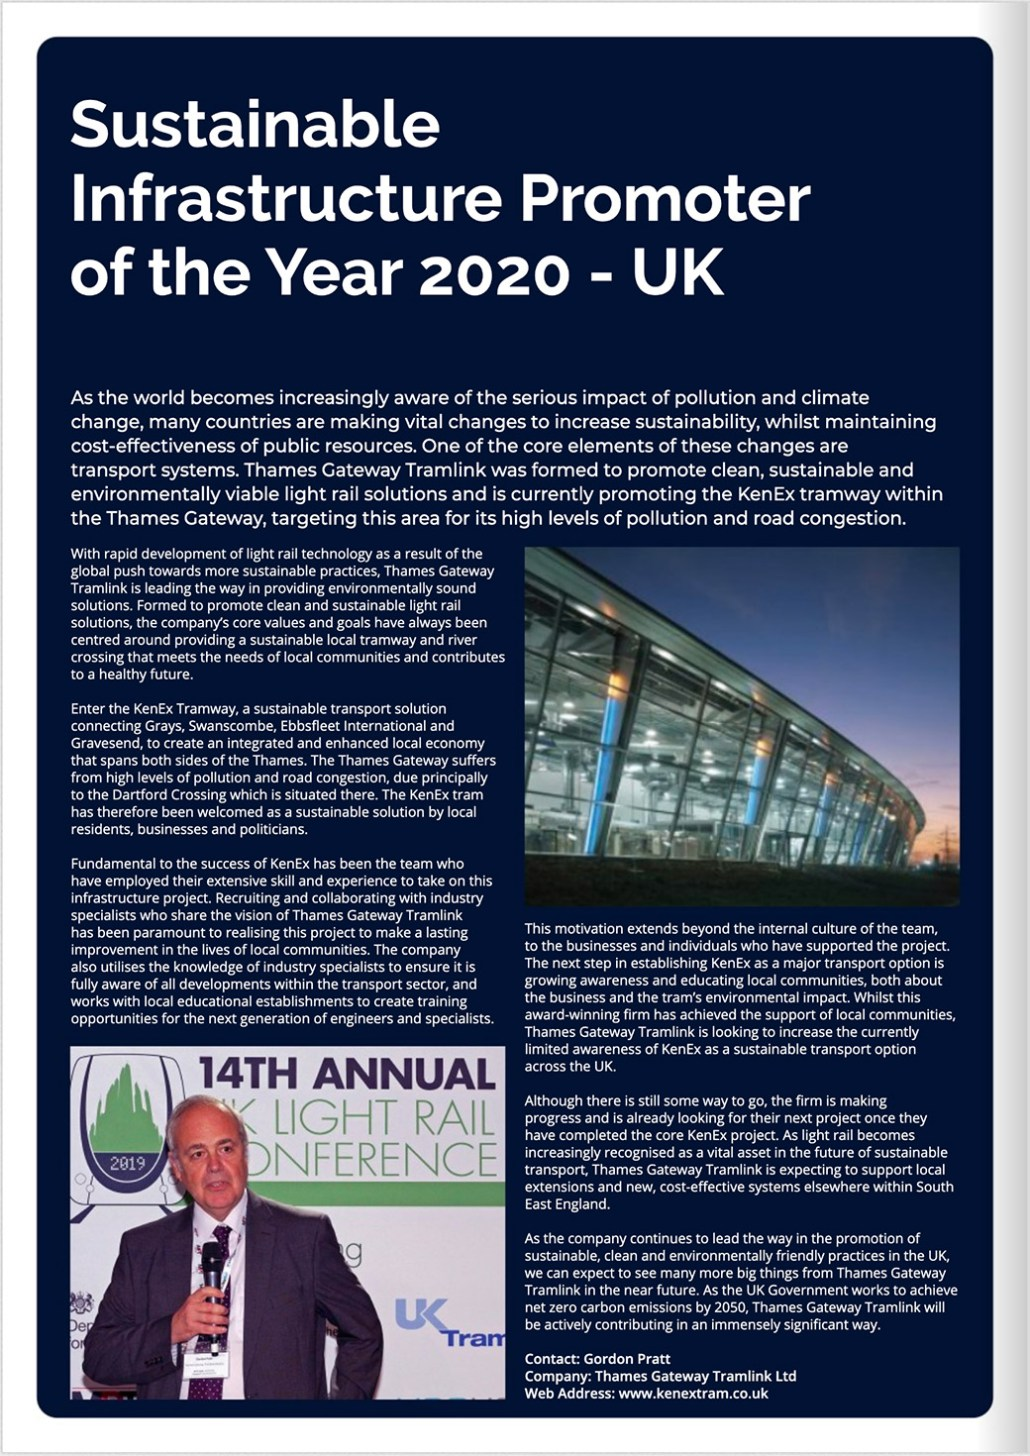 KenEx promoters awarded sustainable infrastructure promoter of the year 2020 by Corporate Vision